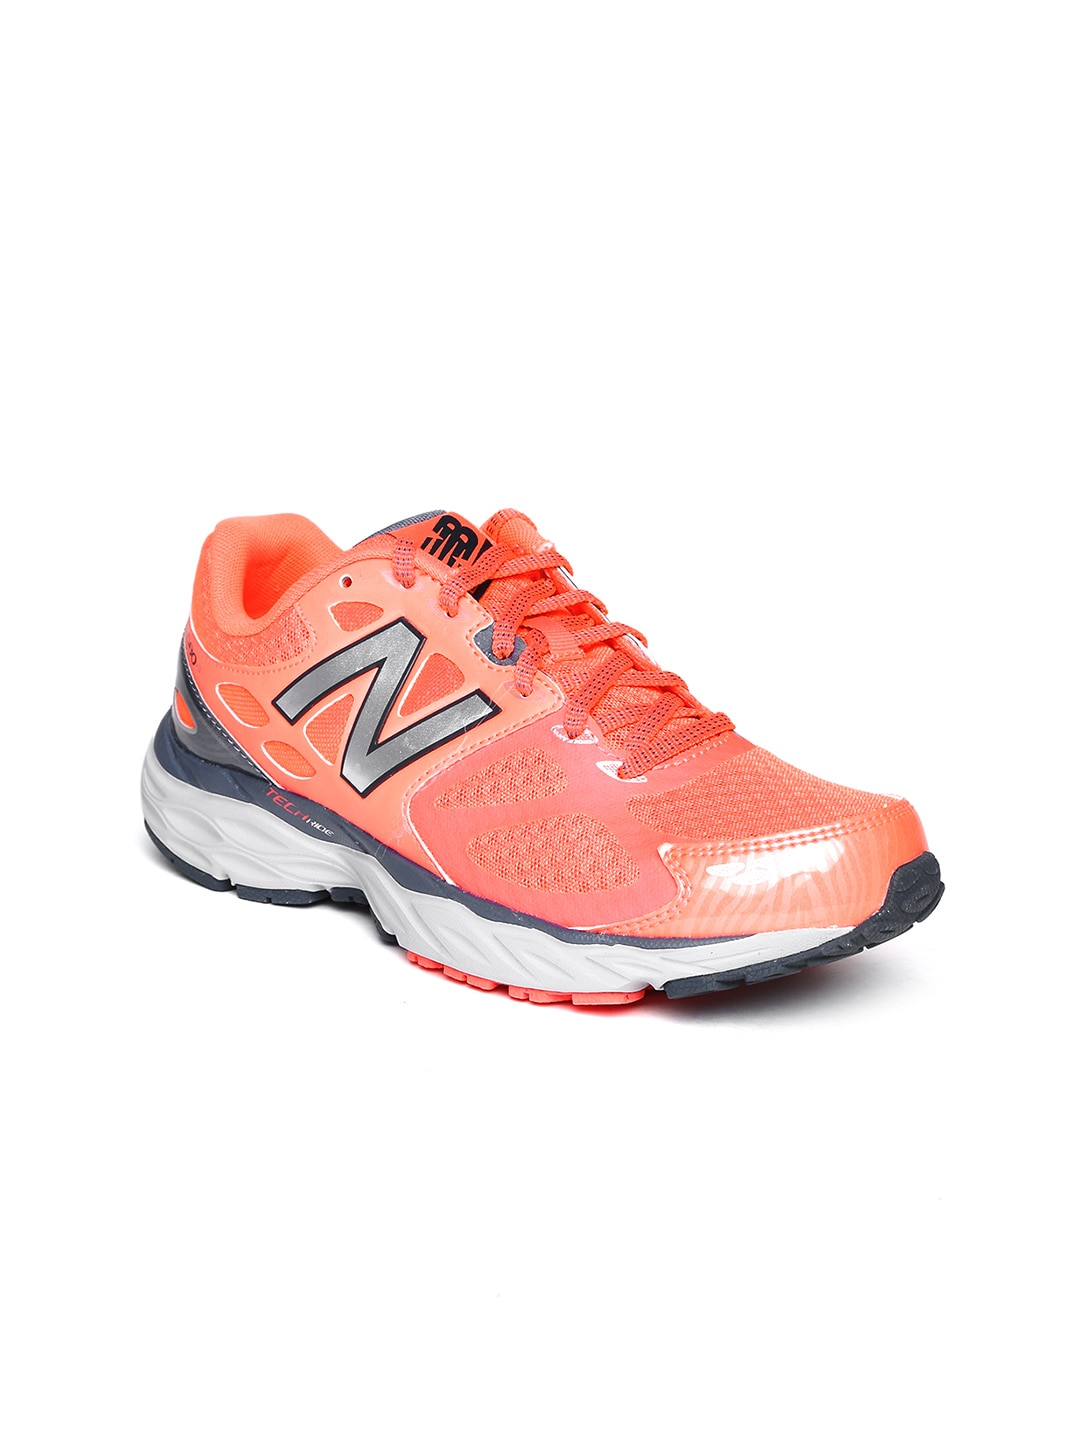 4059896bee7e New Balance Shoes - Buy New Balance Shoes online in India